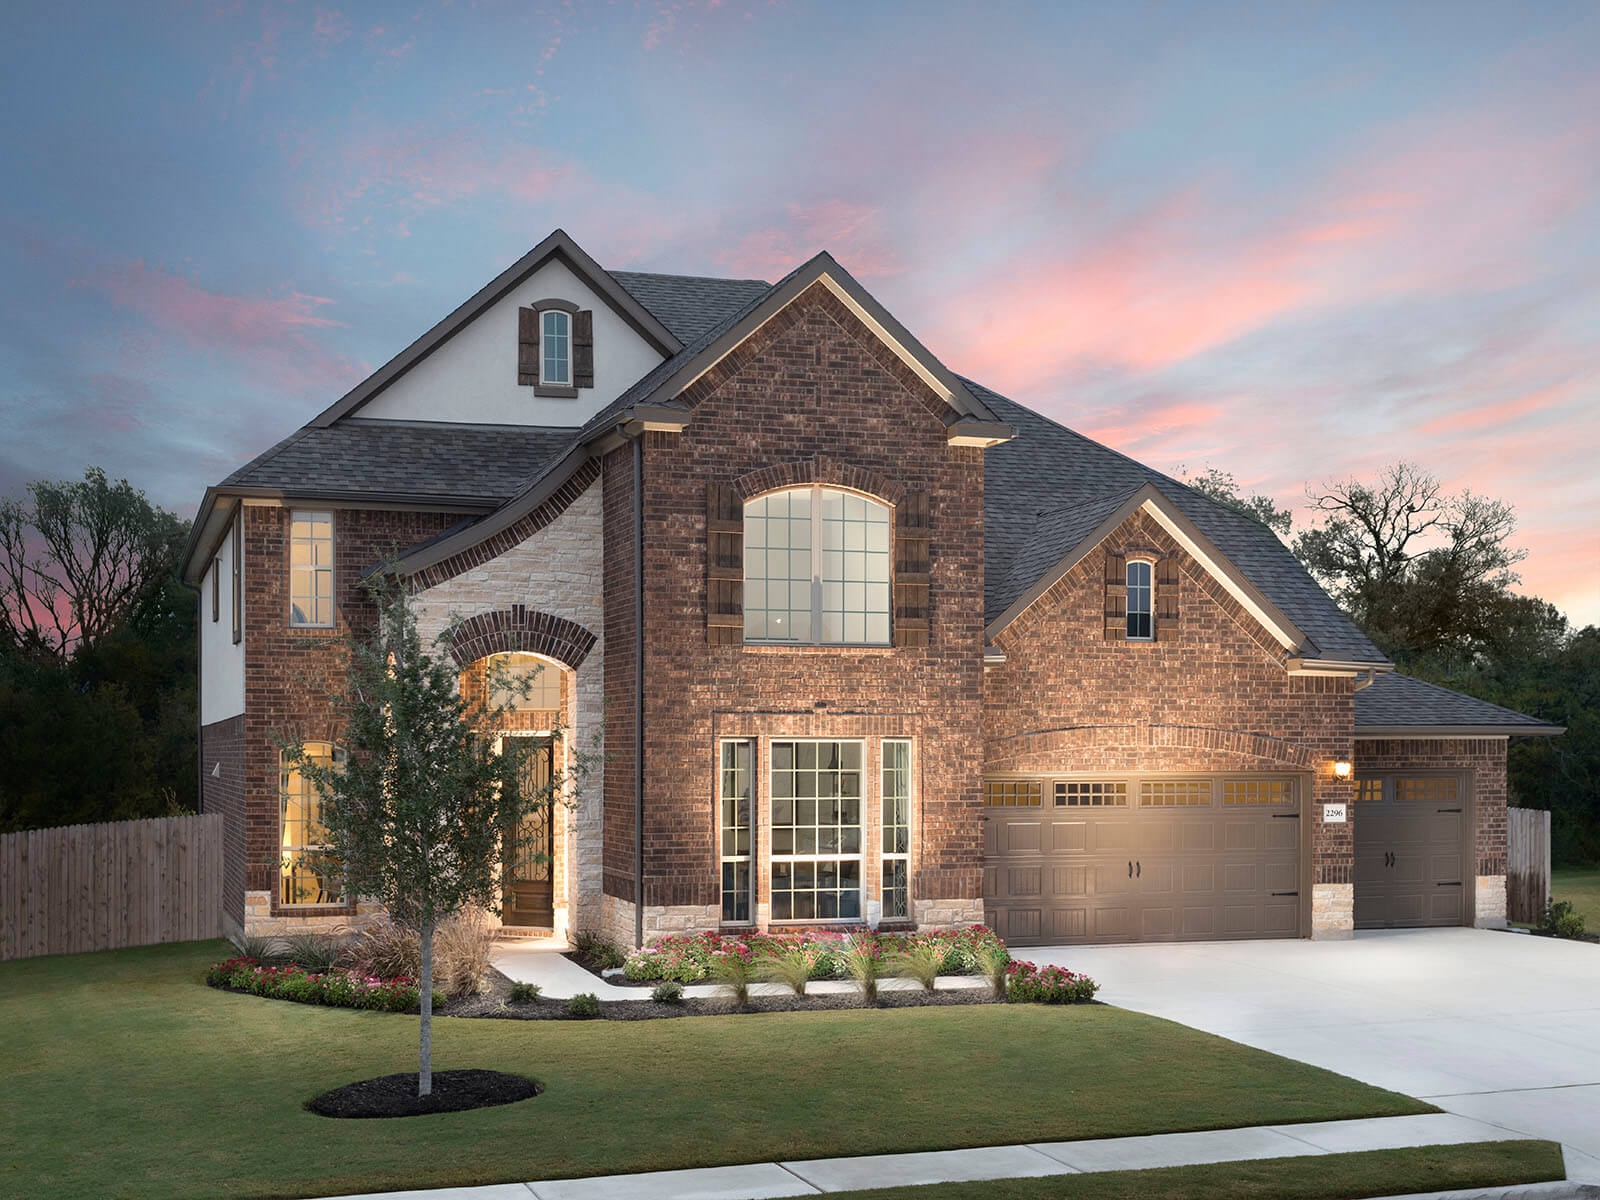 the andes (5542) model – 4br 4ba homes for sale in round rock, tx